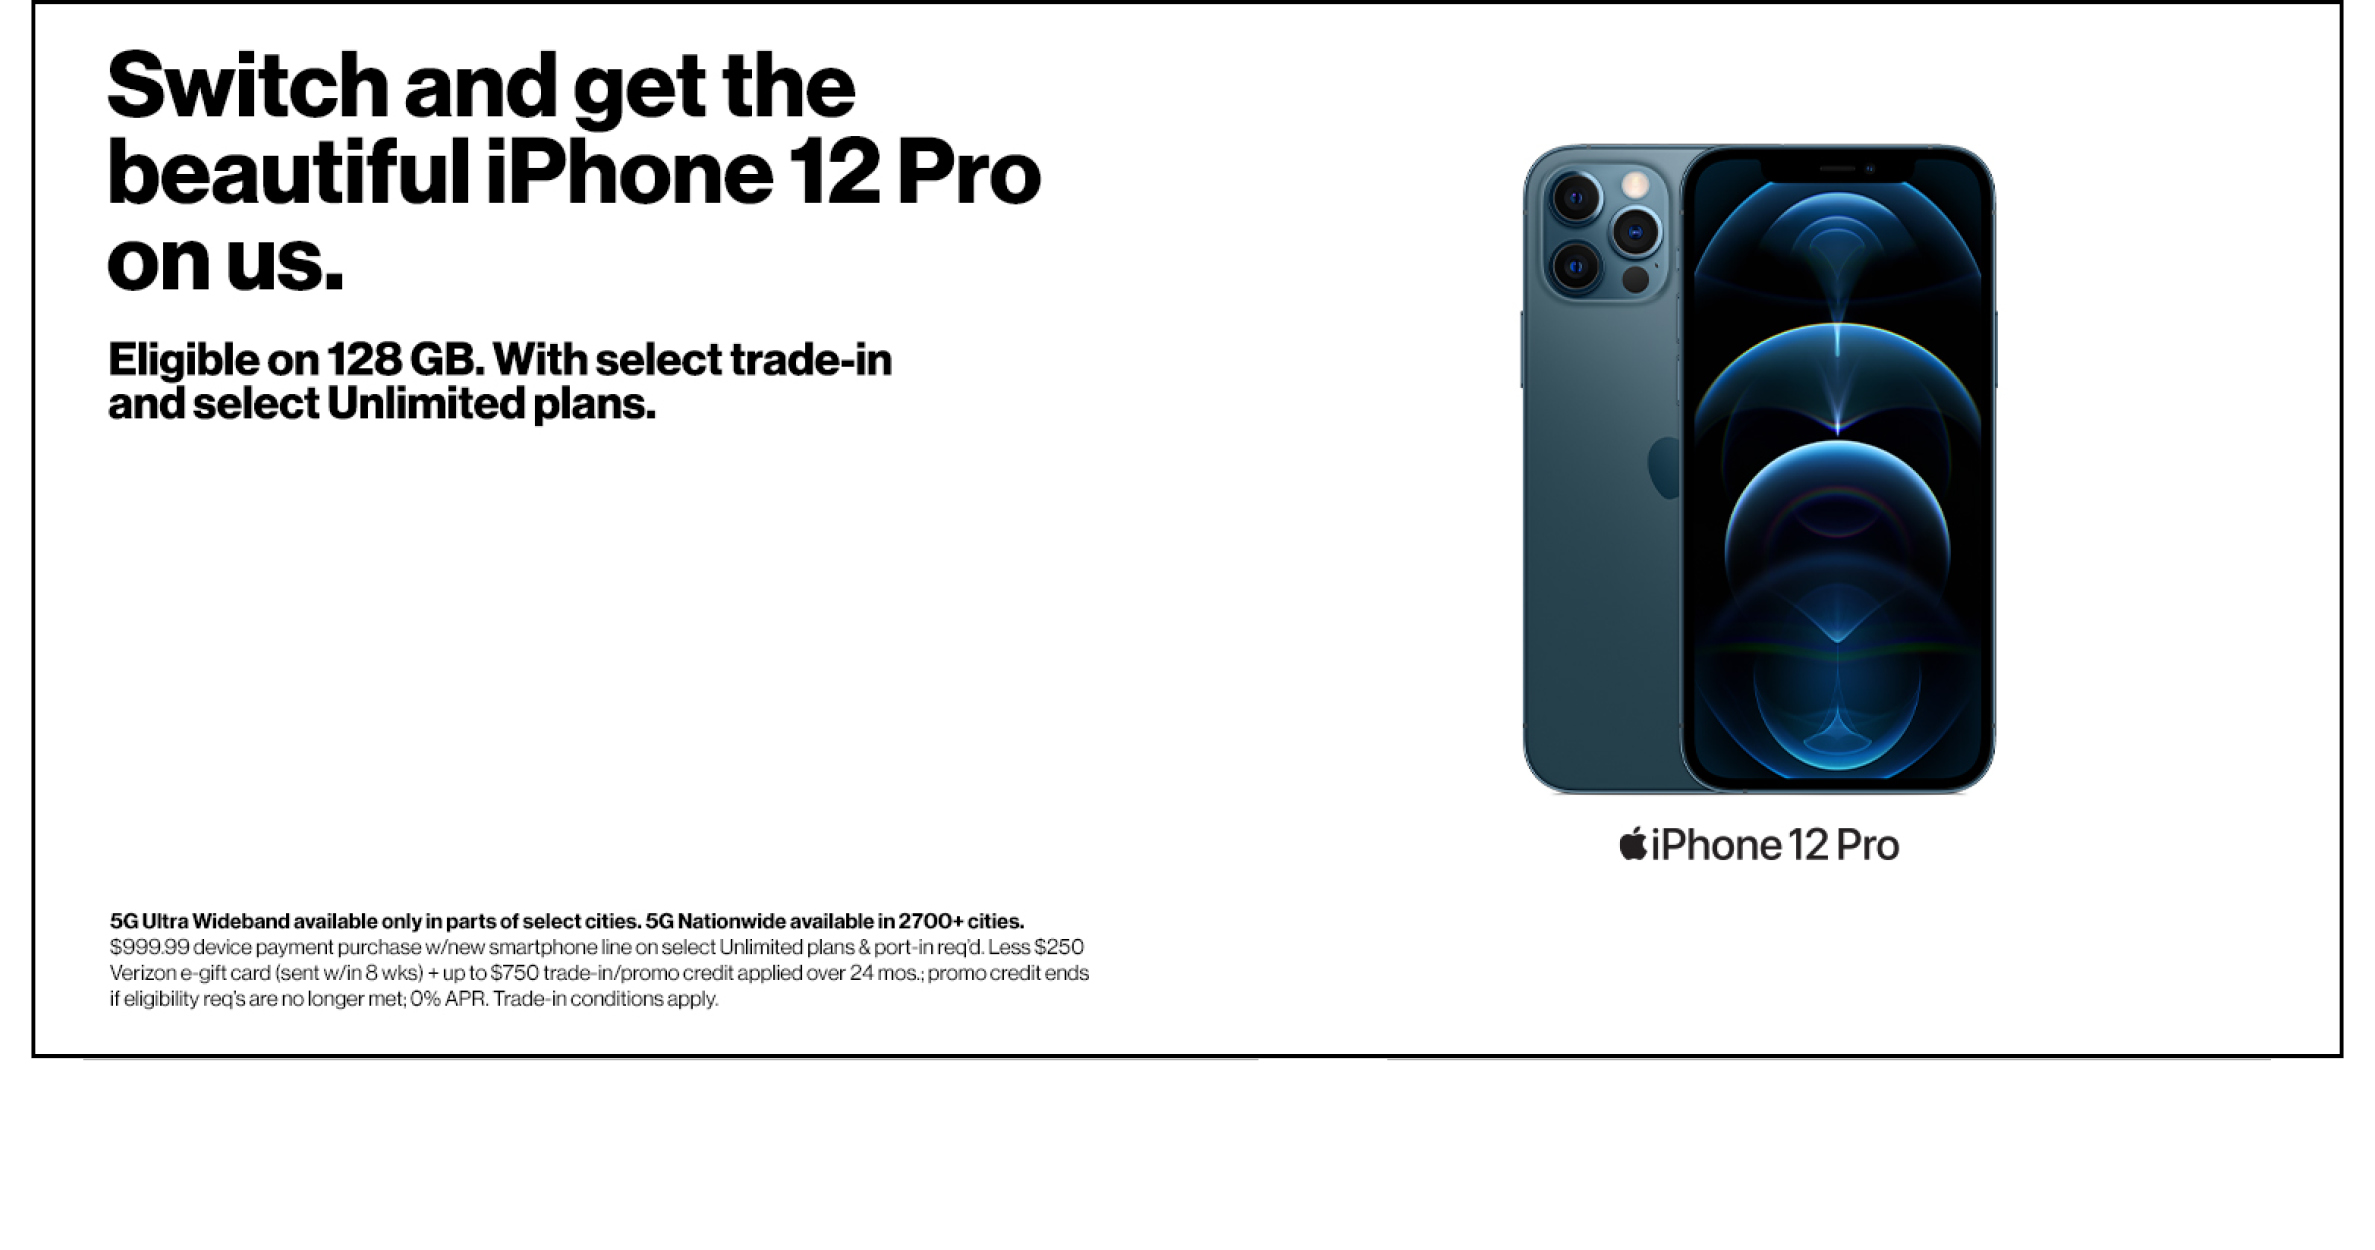 Get a free iPhone 12 Pro when you switch to Verizon.